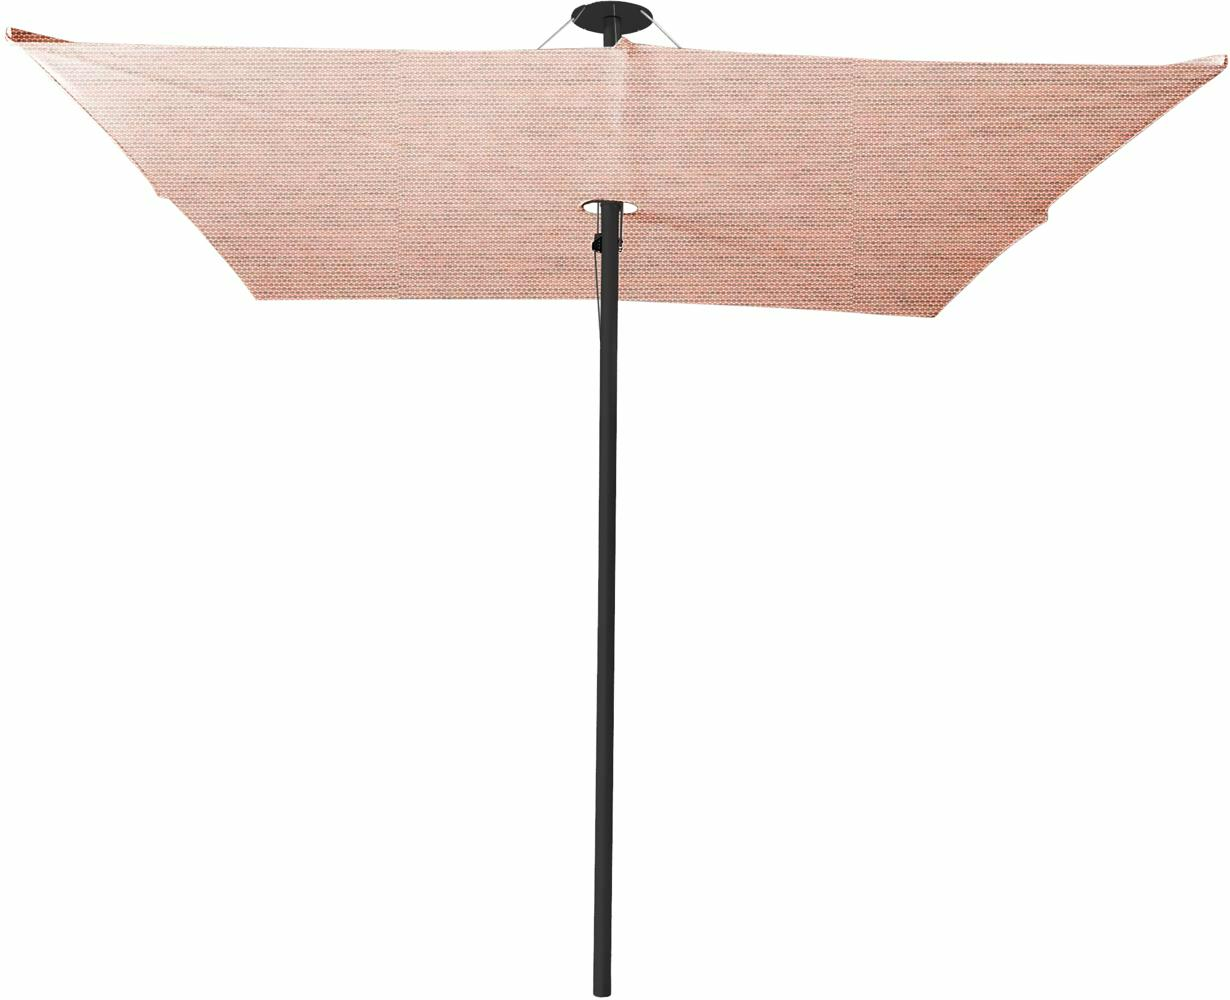 Infina center post umbrella, 3 m square, with frame in Dusk and Solidum Blush canopy.